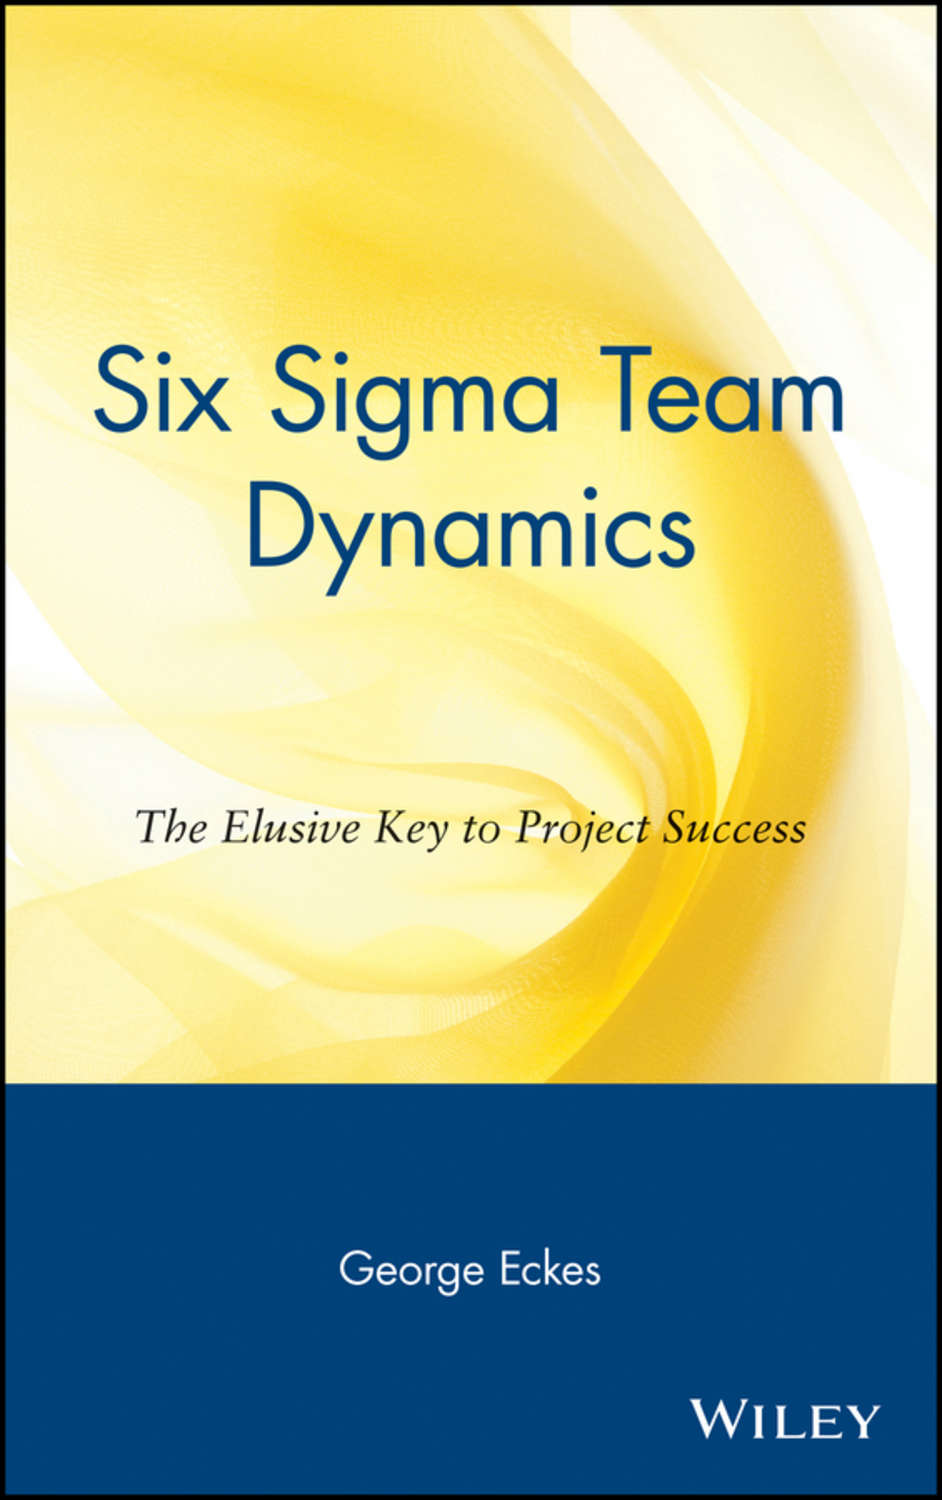 dynamic seal mba six sigma Mba graduate certificate lean six sigma helps individuals  so activate your moment in an agsm short course - a dynamic space where real impact happens.